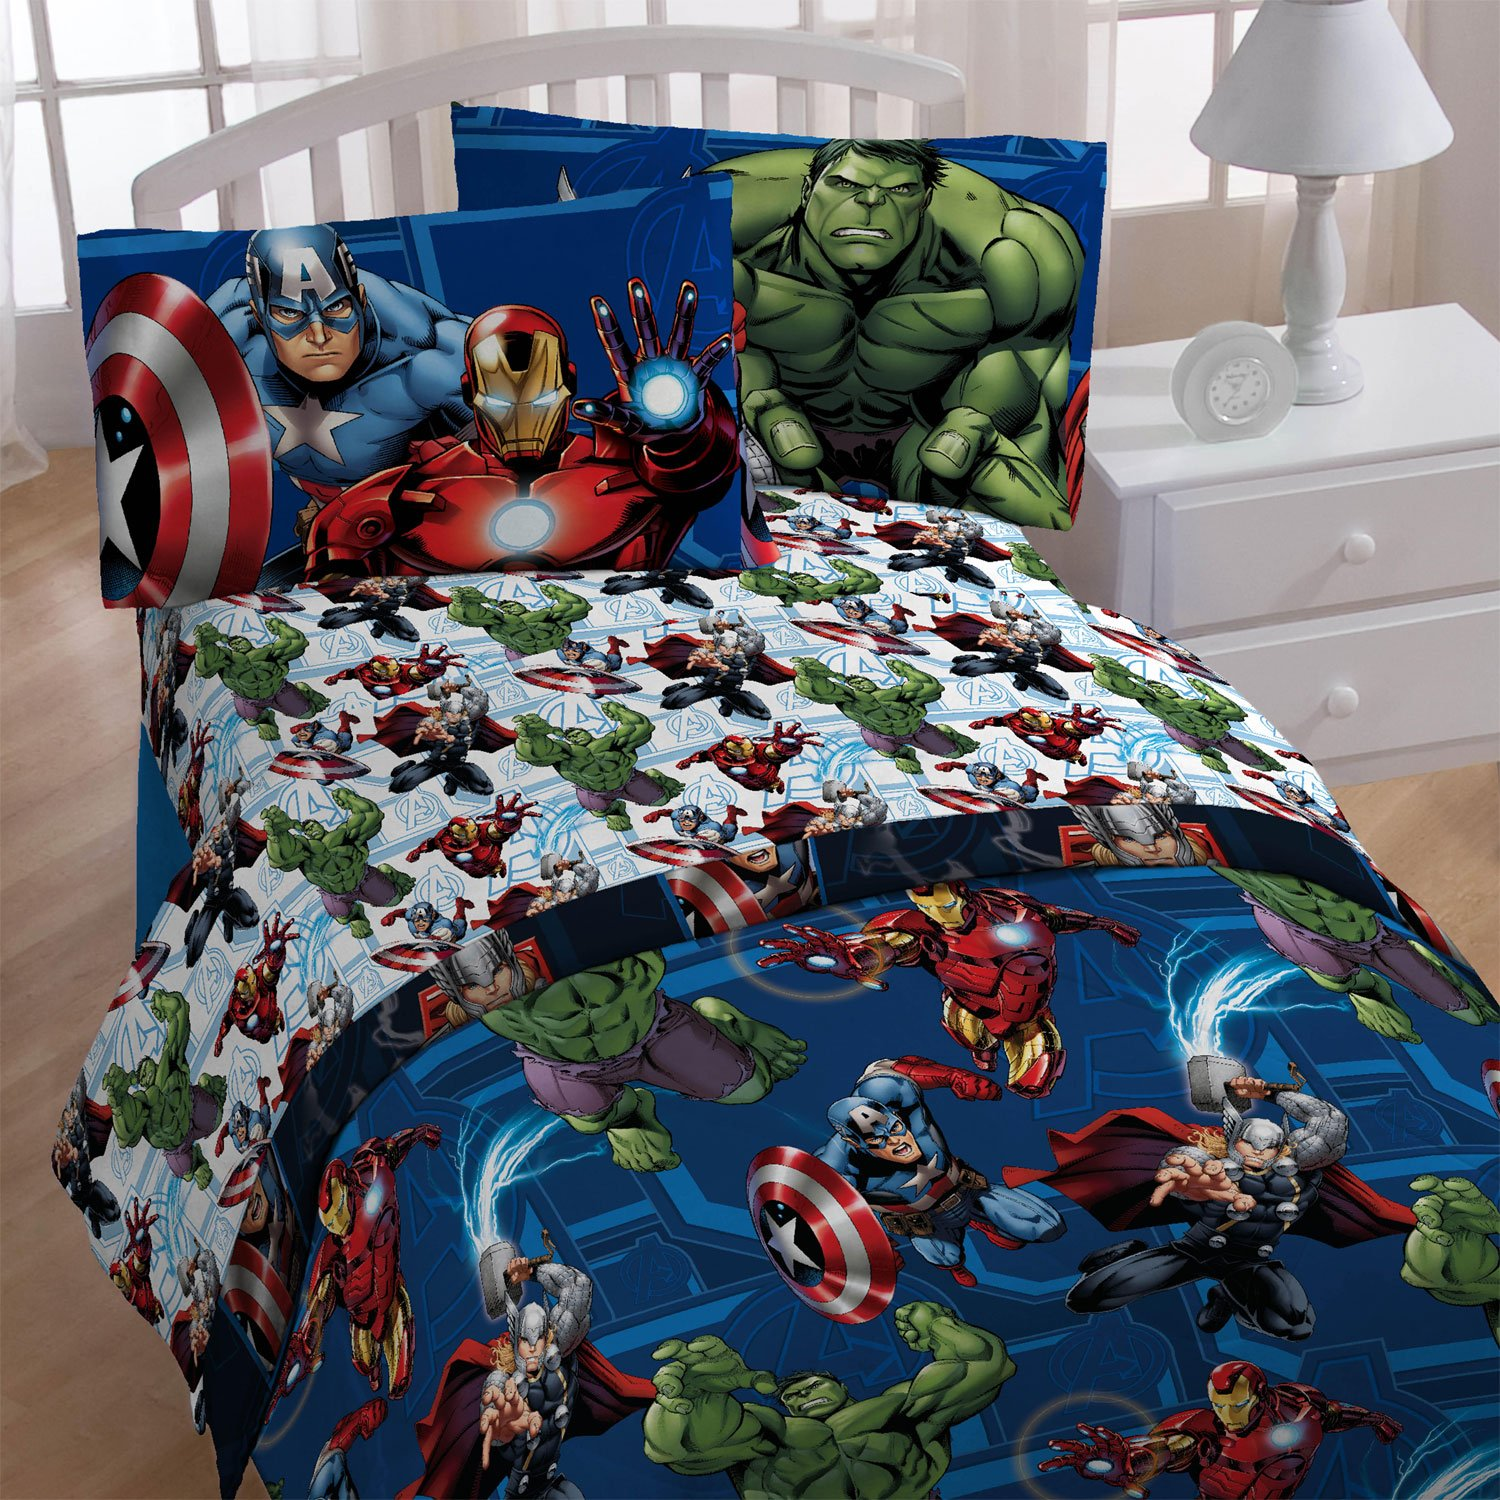 Avengers bedding set twin - 4pc Marvel Avengers Twin Bedding Set Heroic Age Comforter